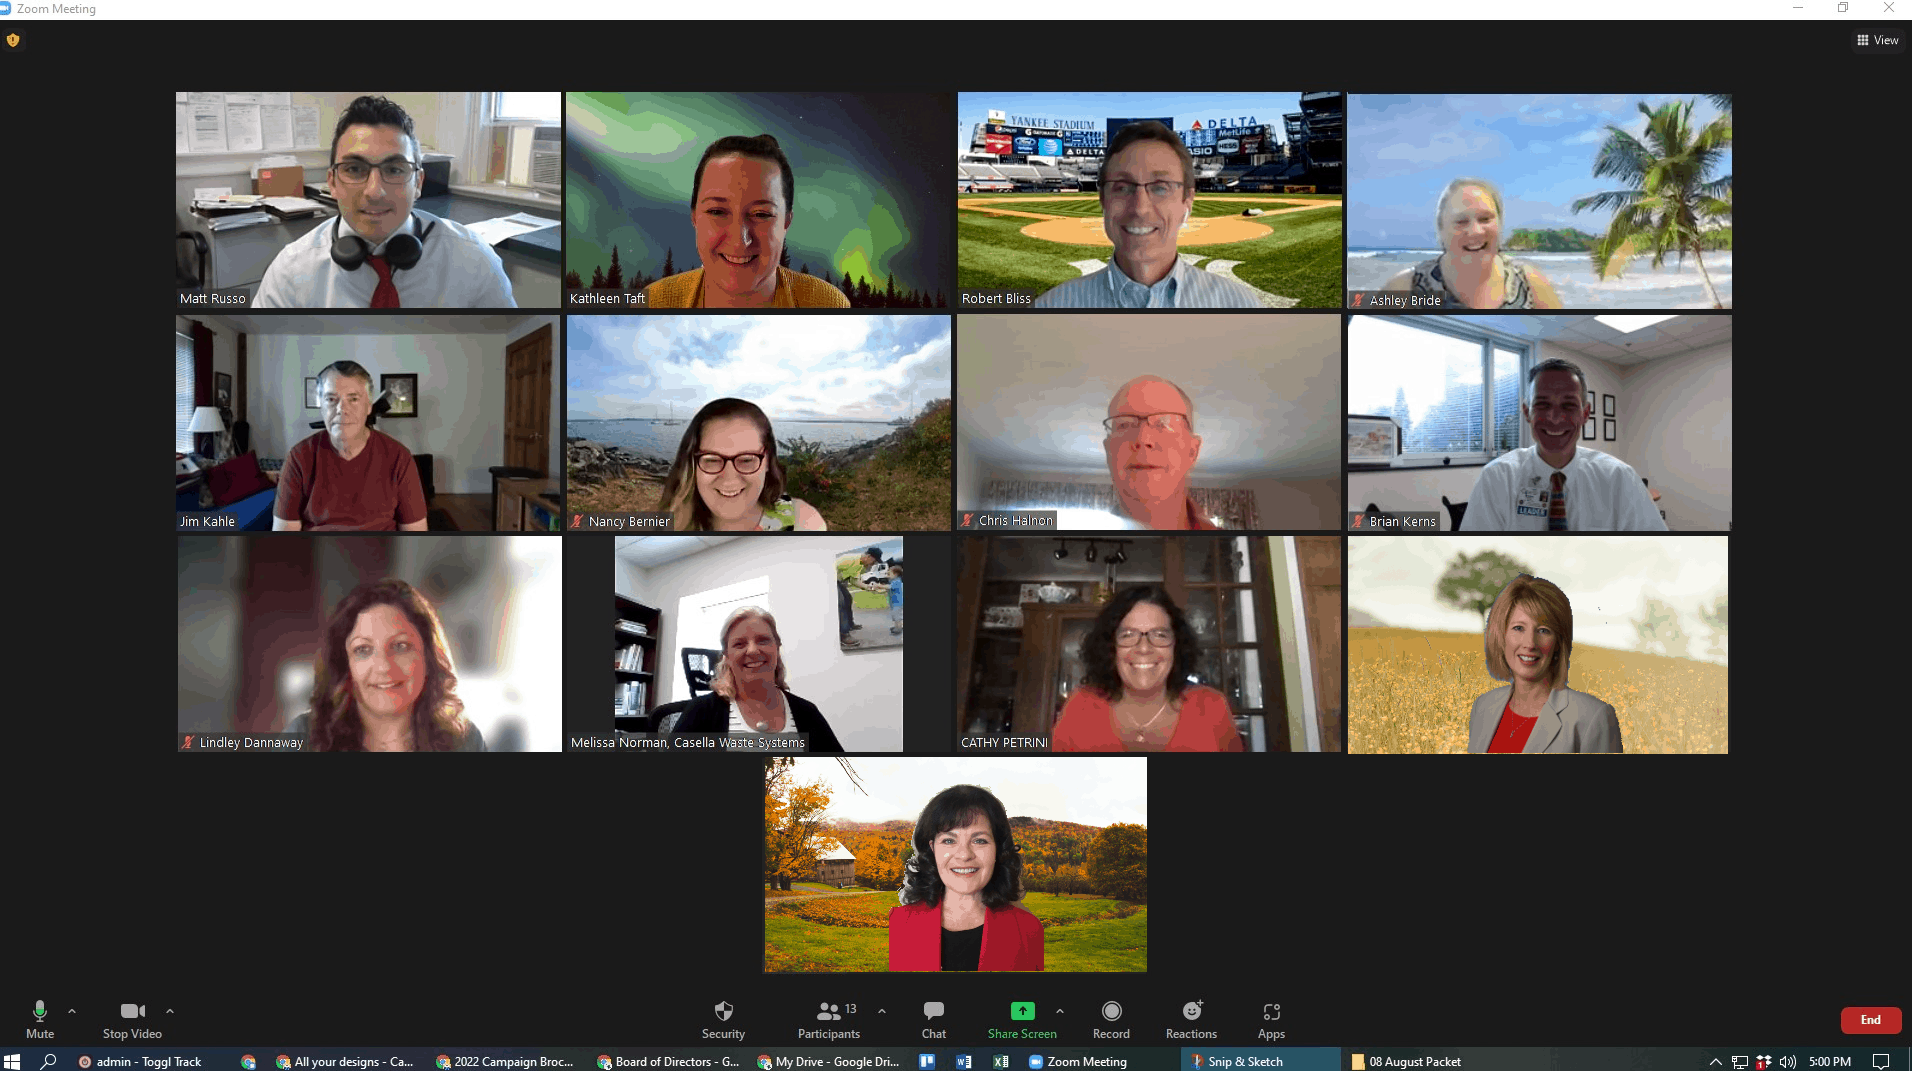 Board of Directors attending a meeting on Zoom.